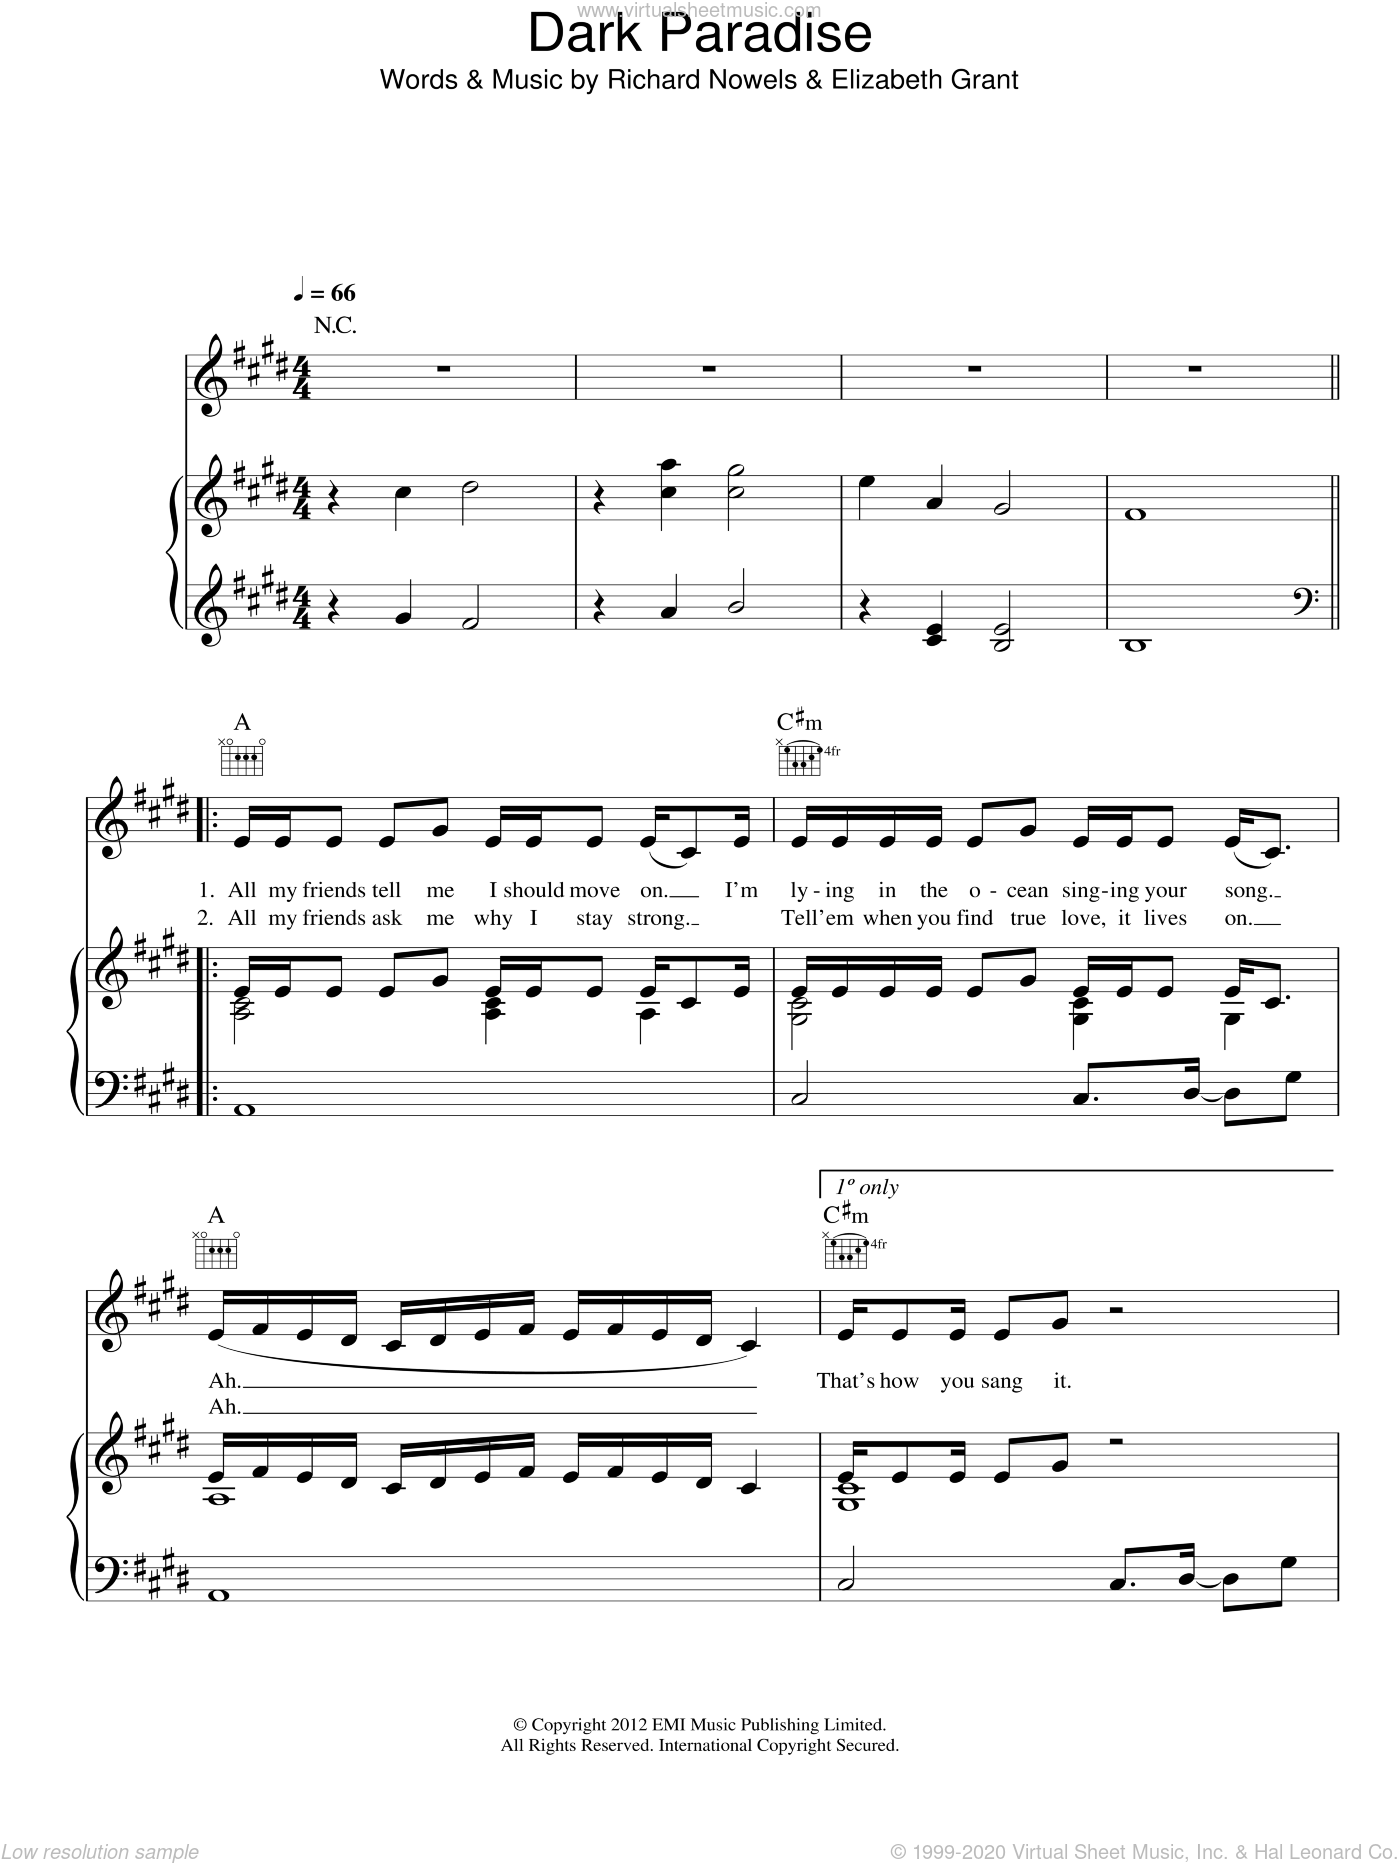 Dark Paradise sheet music for voice, piano or guitar by Lana Del Rey, Elizabeth Grant and Rick Nowels, intermediate skill level